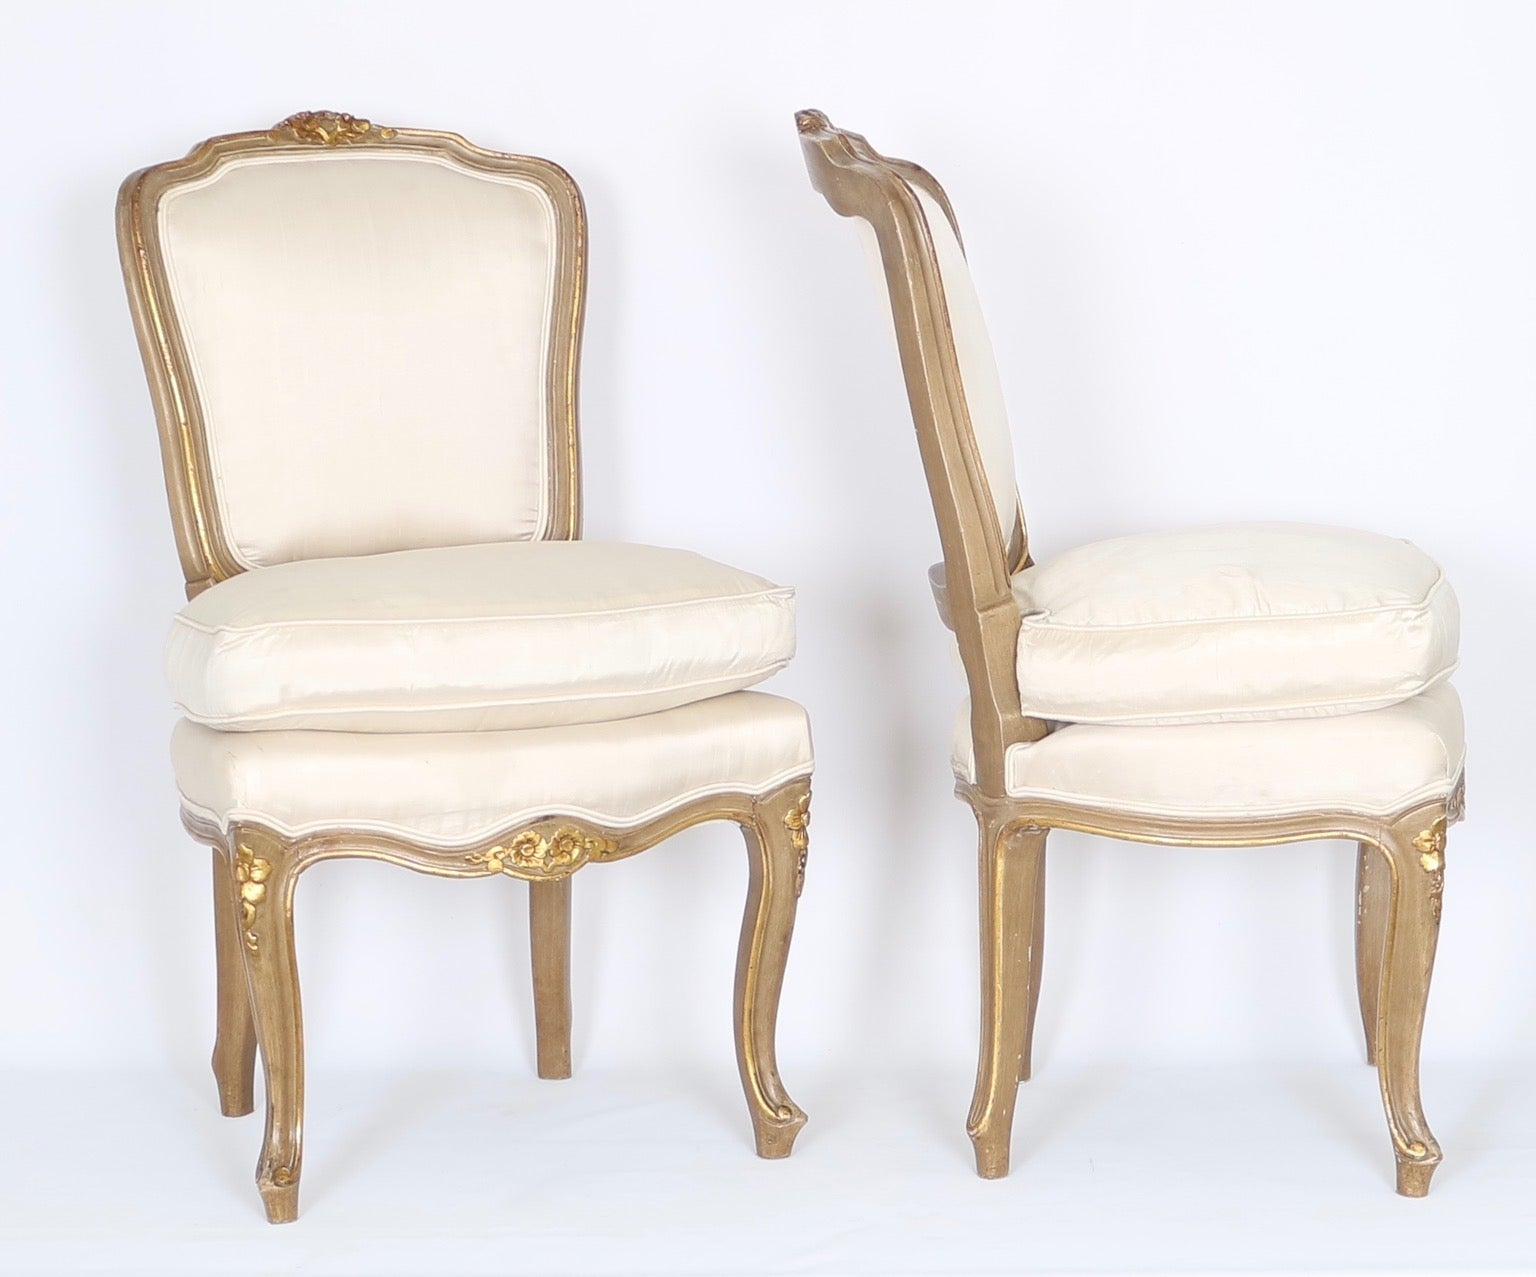 vanity chairs with back leather ottoman louis xv style petite gilded in off white silk on giltwood frames at 1stdibs